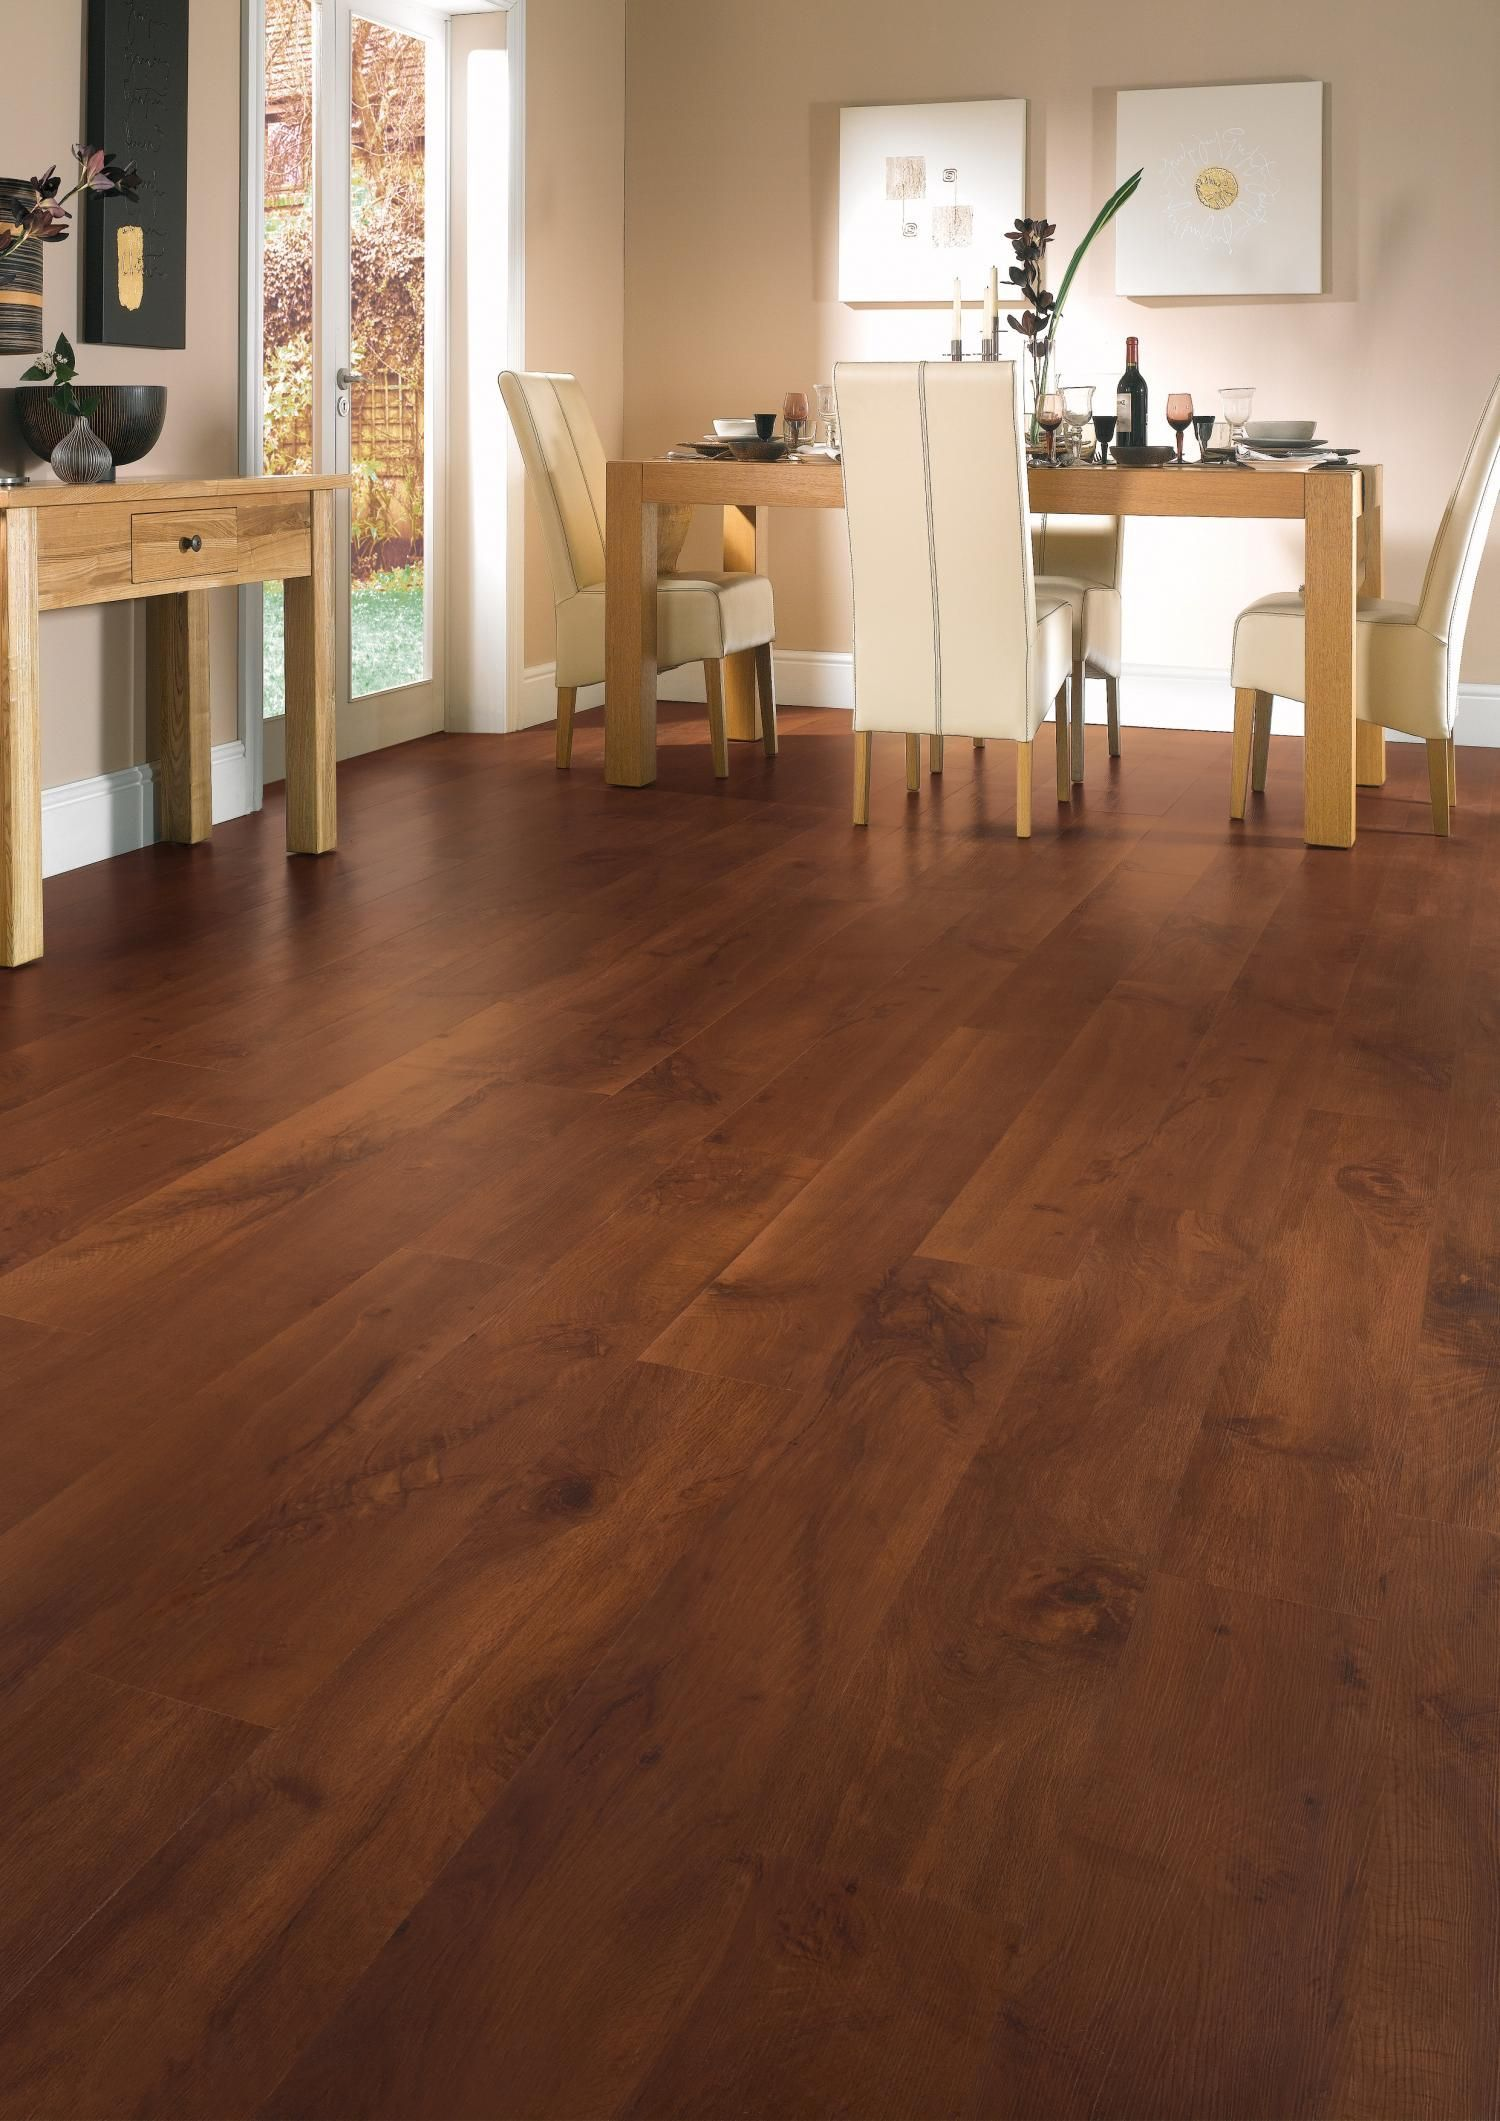 is flooring the articles what of price floors hardwood prices